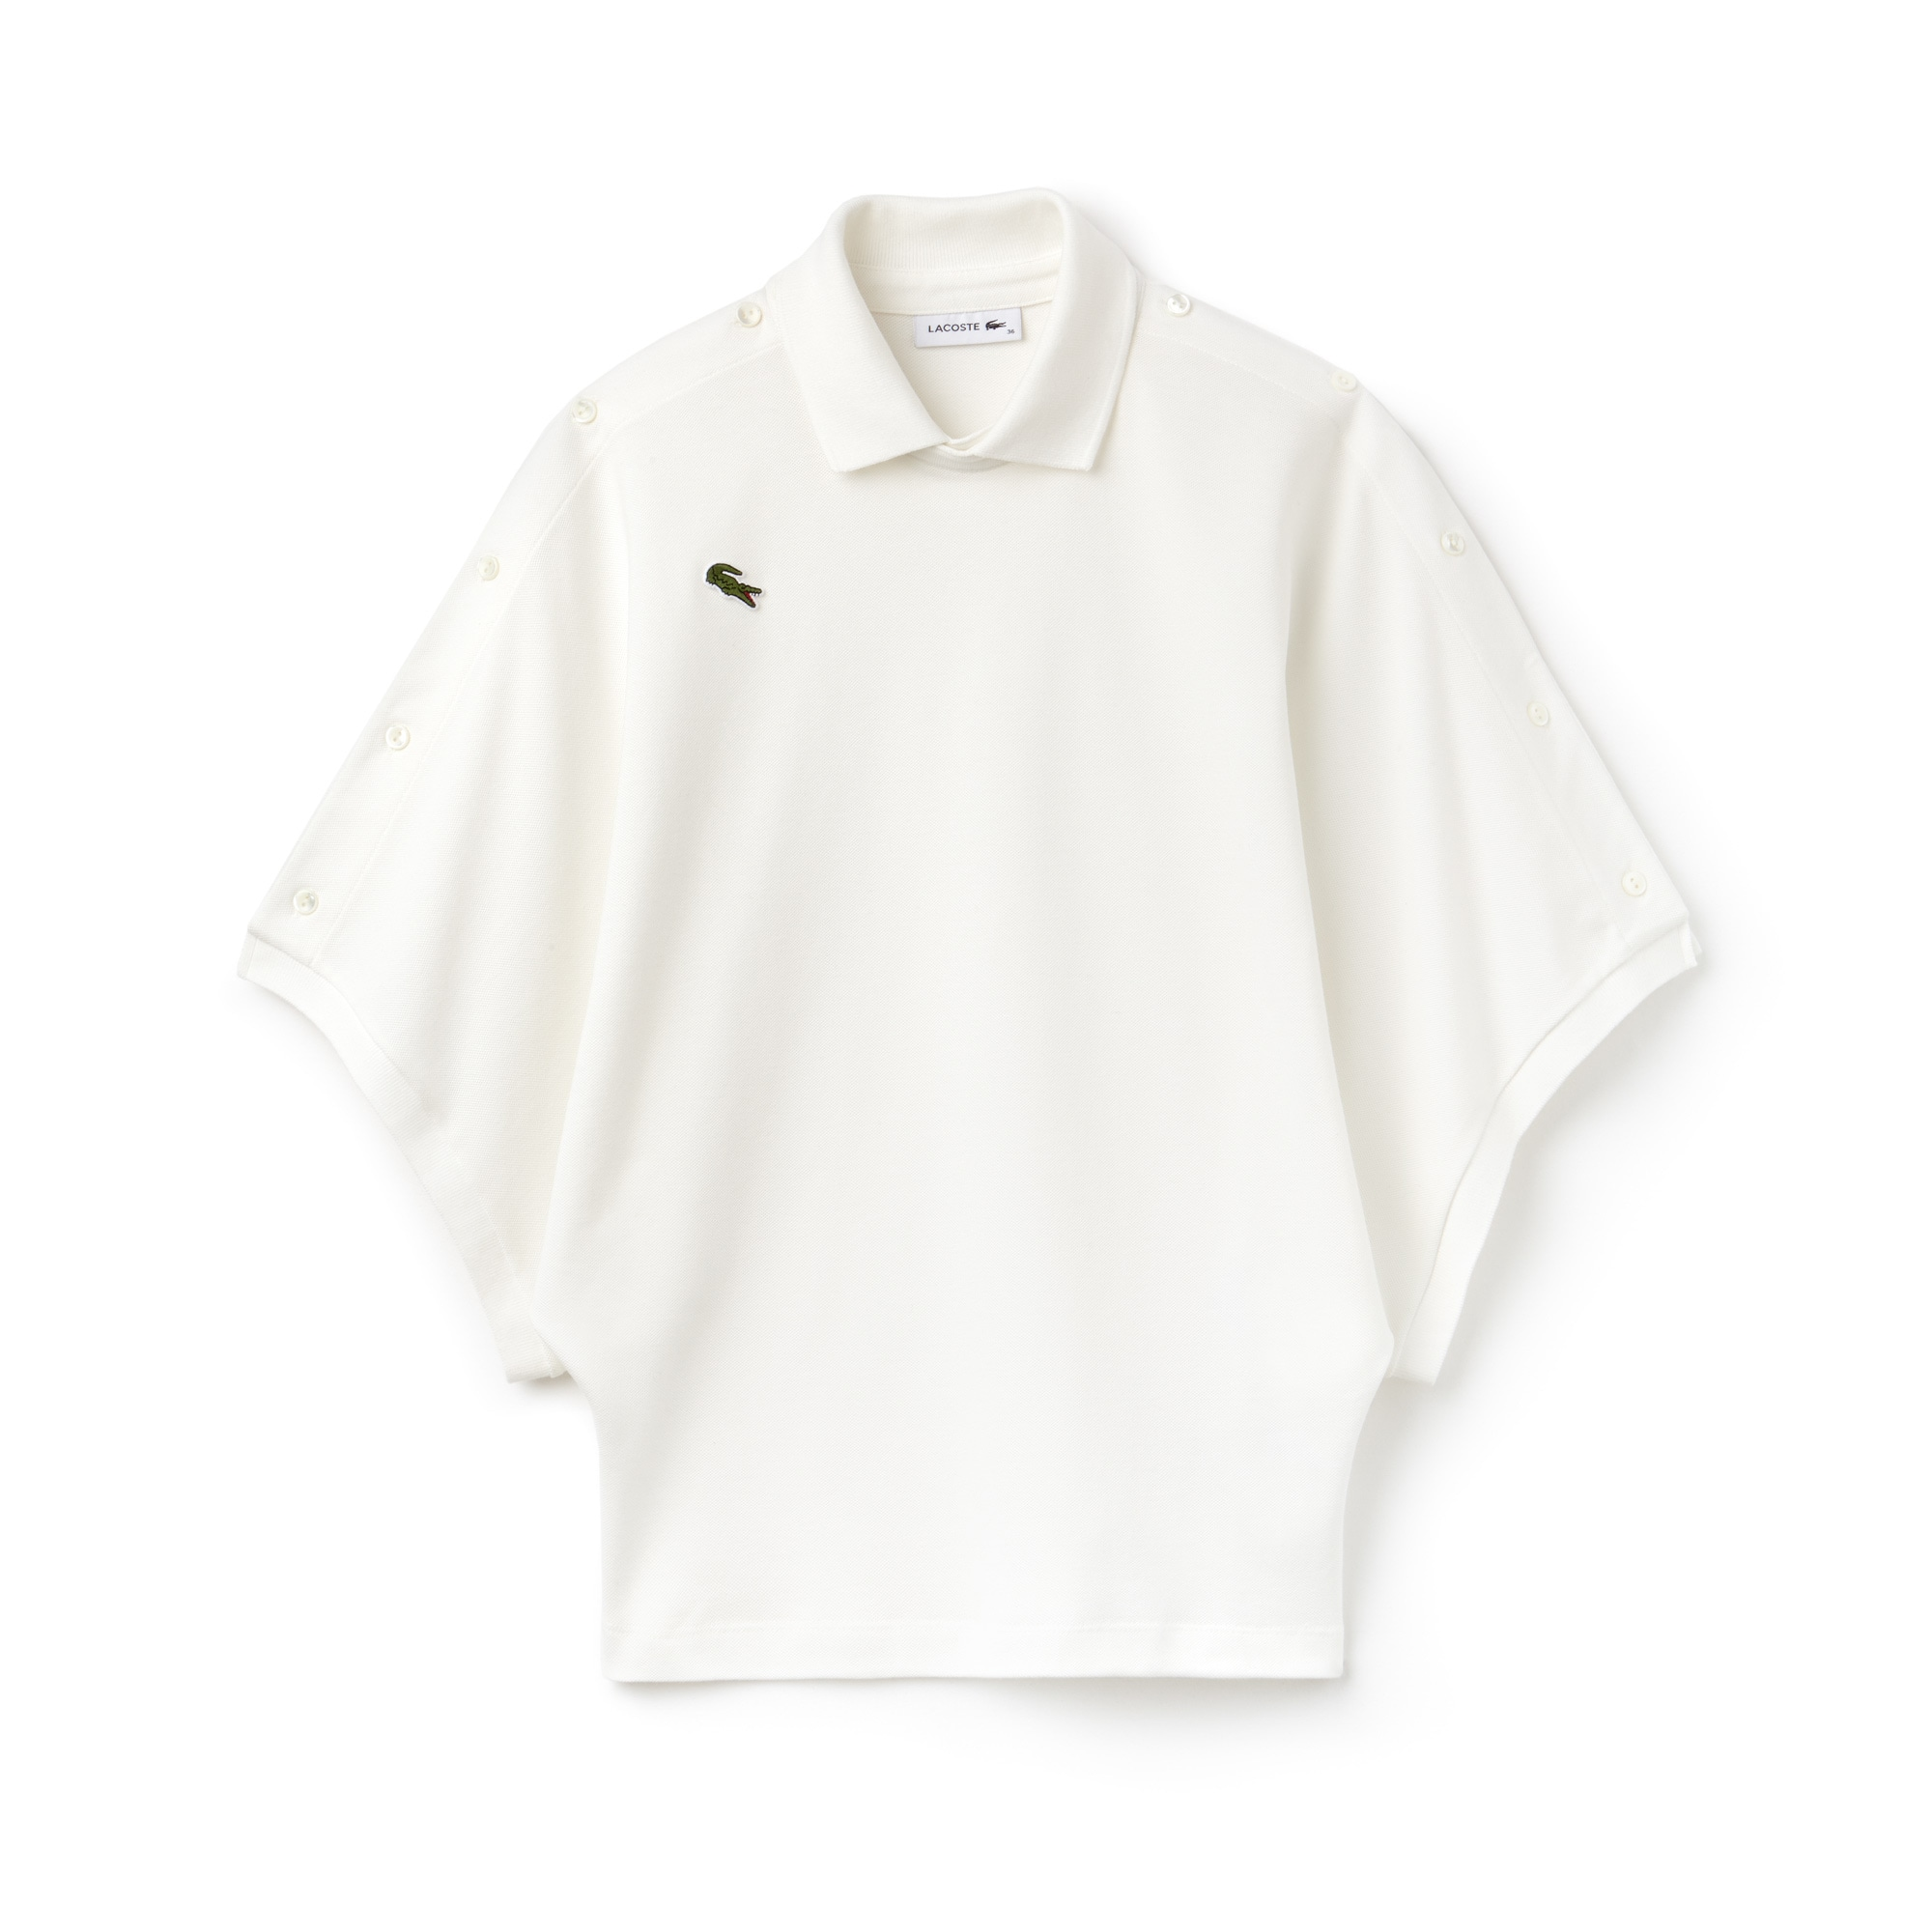 Women's Lacoste Fashion Show Loose Fit Buttoned Sleeves Cotton Piqué Polo